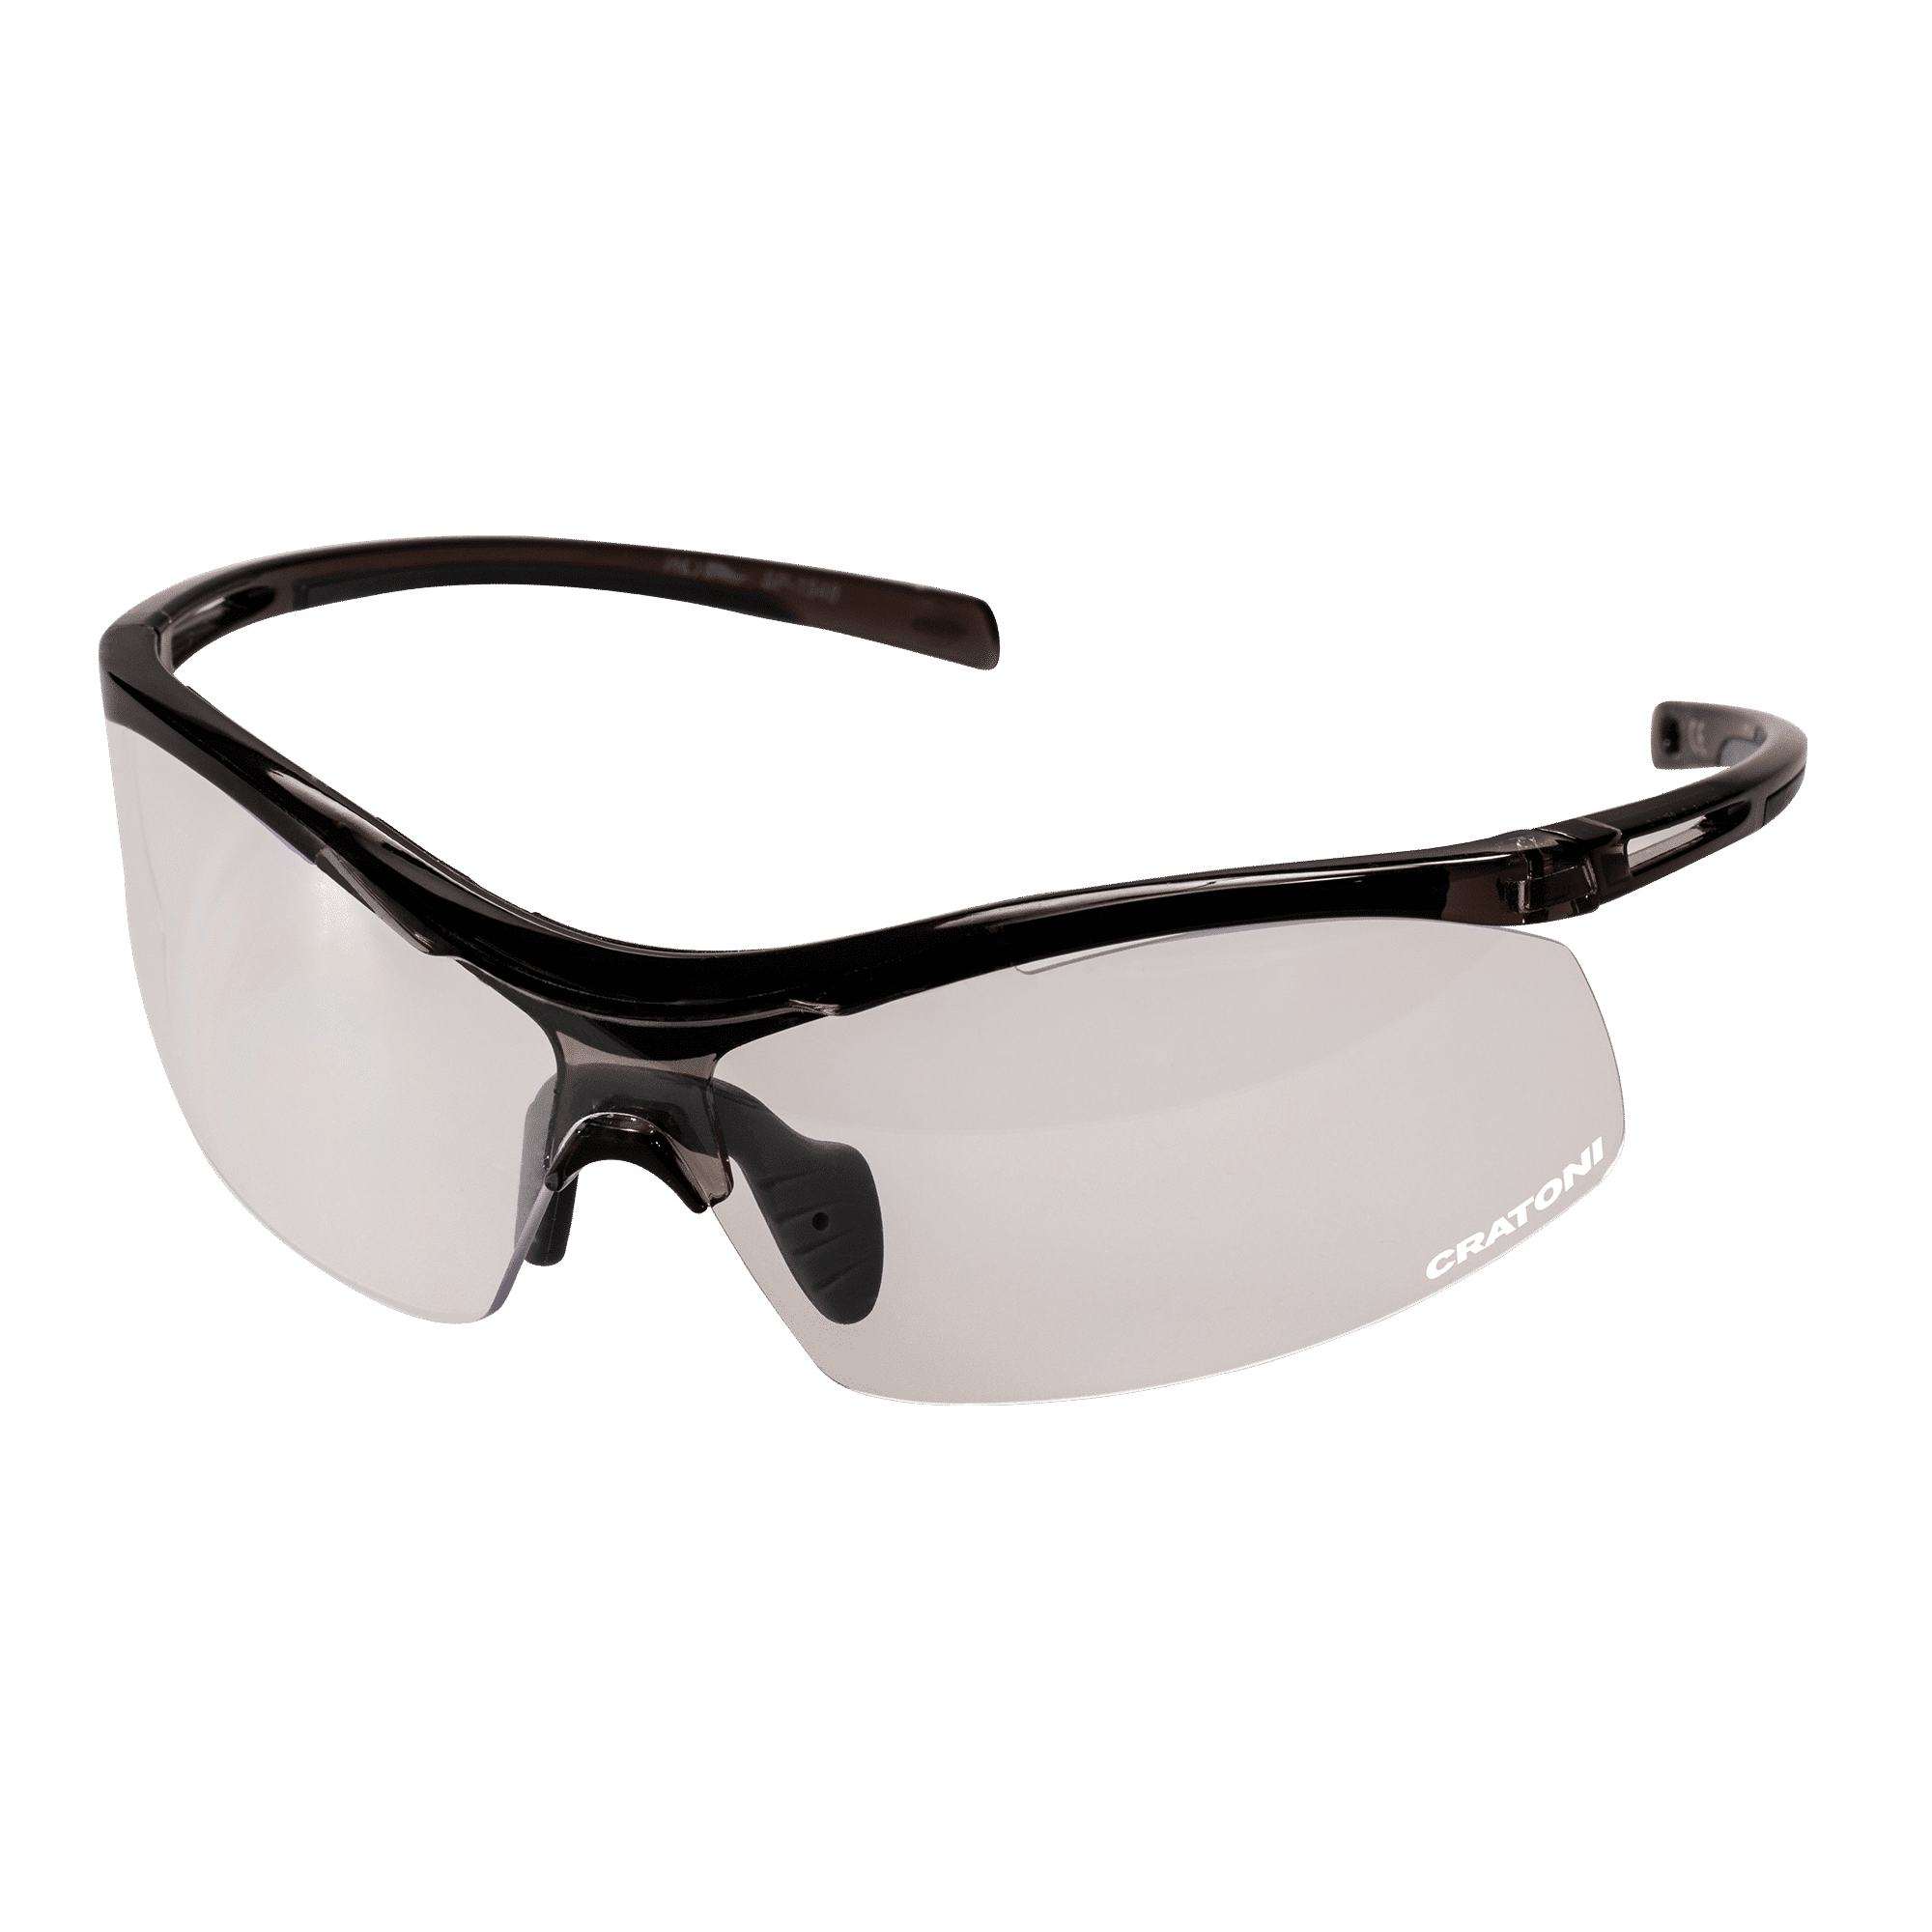 C-Shade Translucent Black